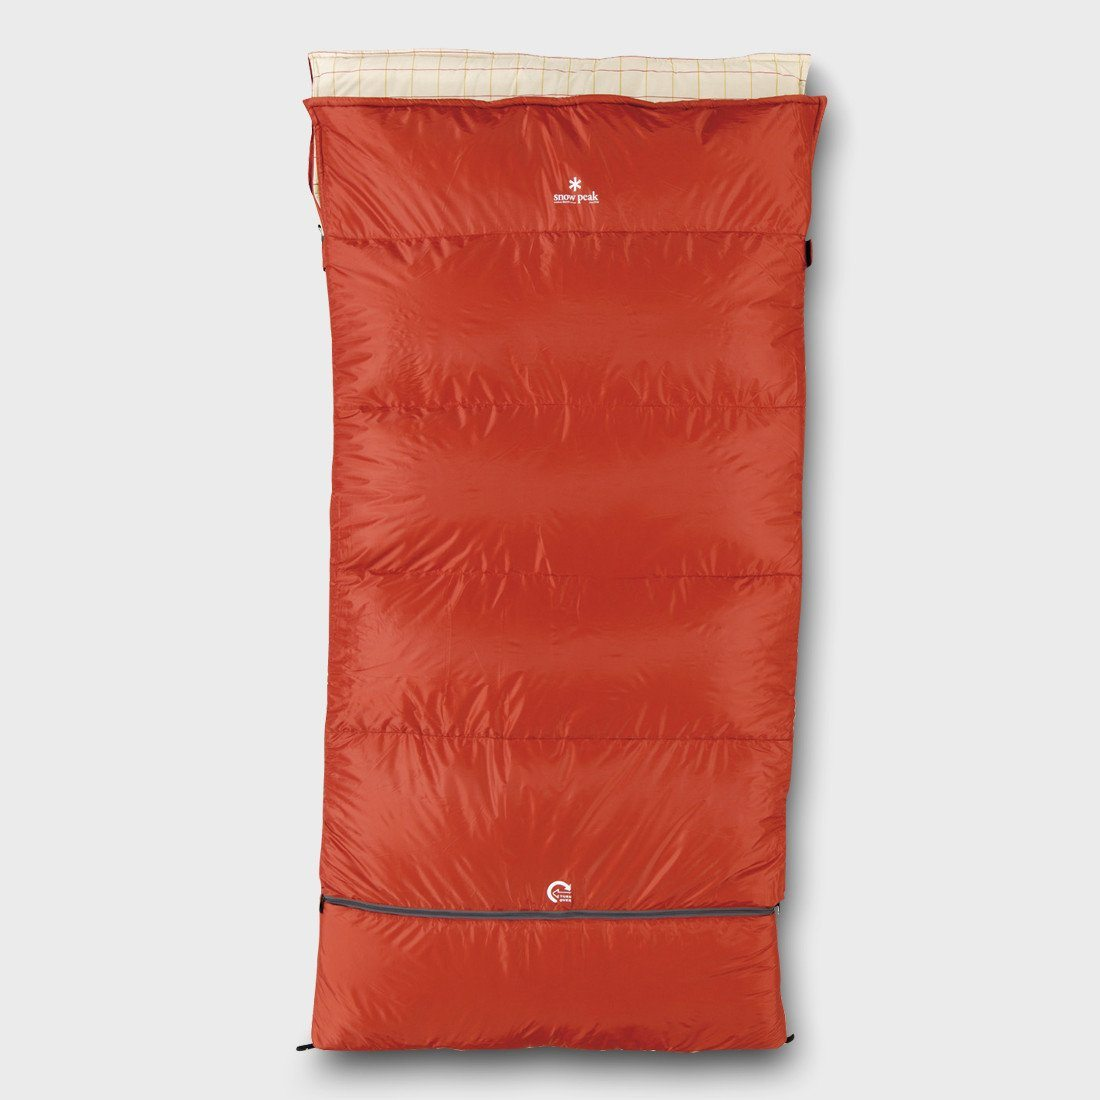 Snow Peak Ofutan Sleeping Bag, Wide XL Red